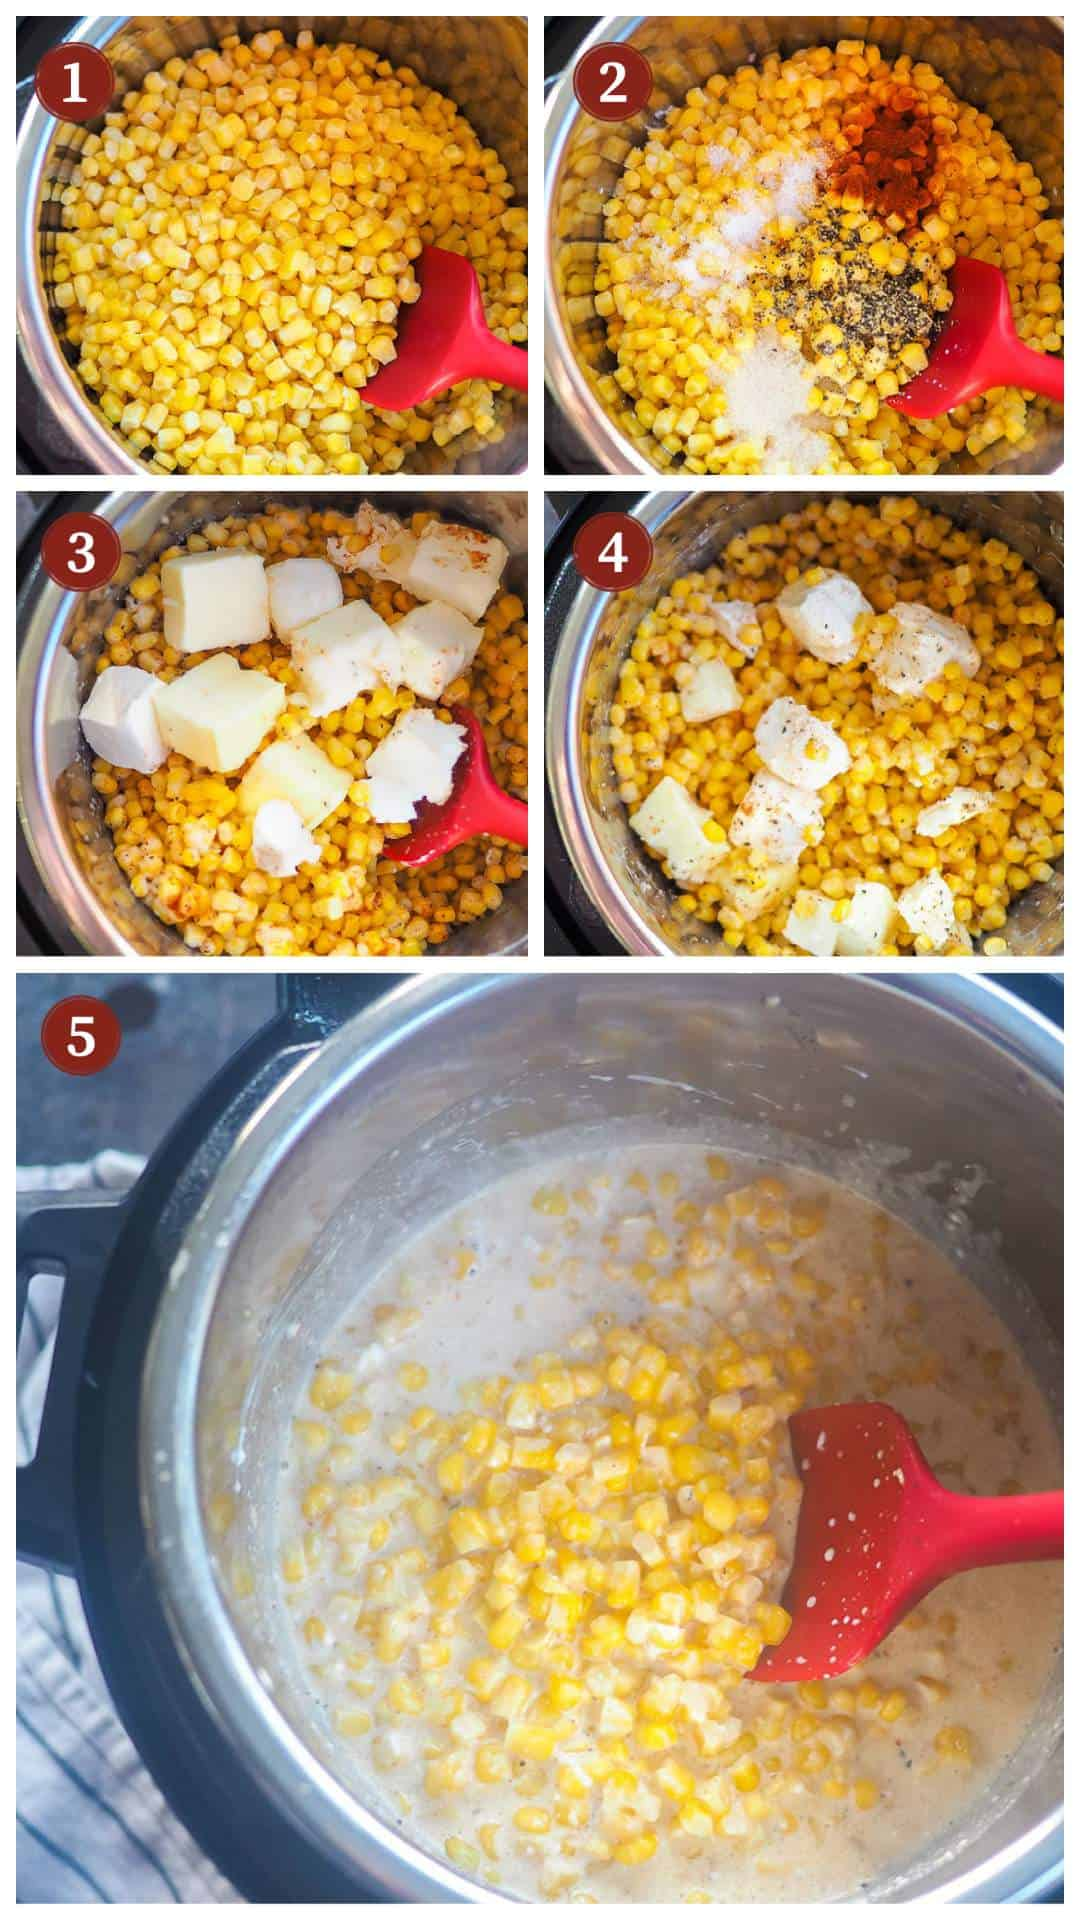 A collage of images showing the process of making creamed corn in an instant pot, steps 1 - 5.